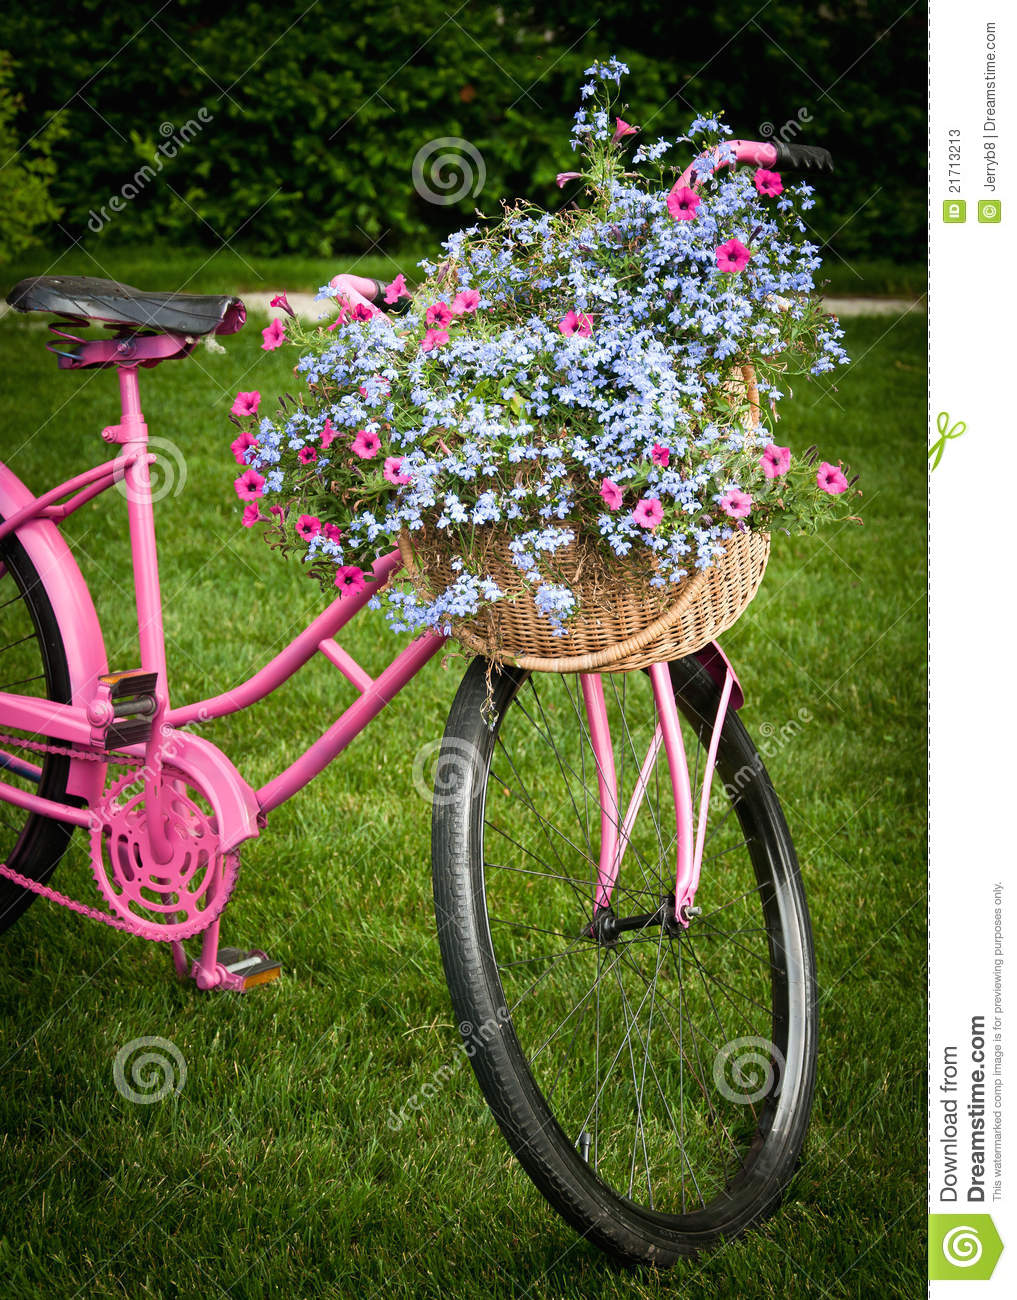 Front yard decor stock image image of outdoors pink for Front yard decor